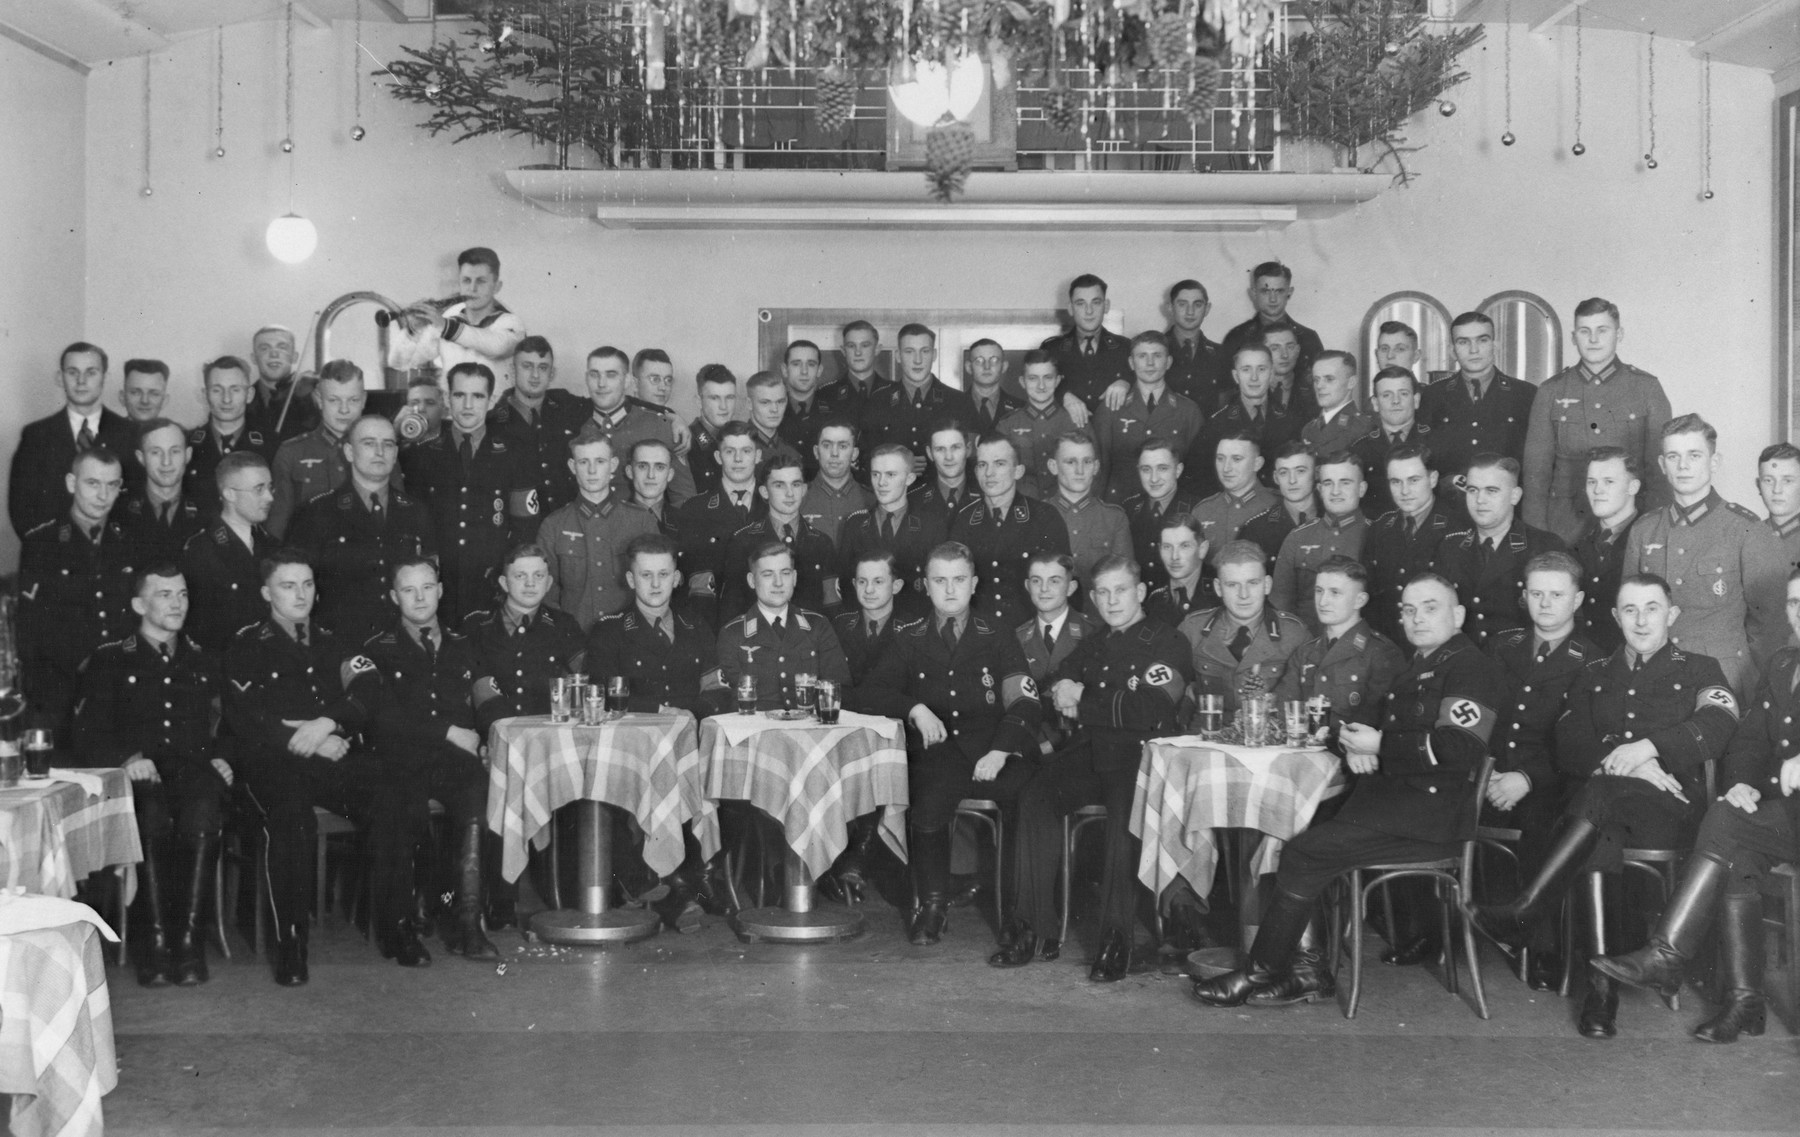 Group portrait of students at the Hitler Jugend Heim (Hitler Youth home) in Poessneck.